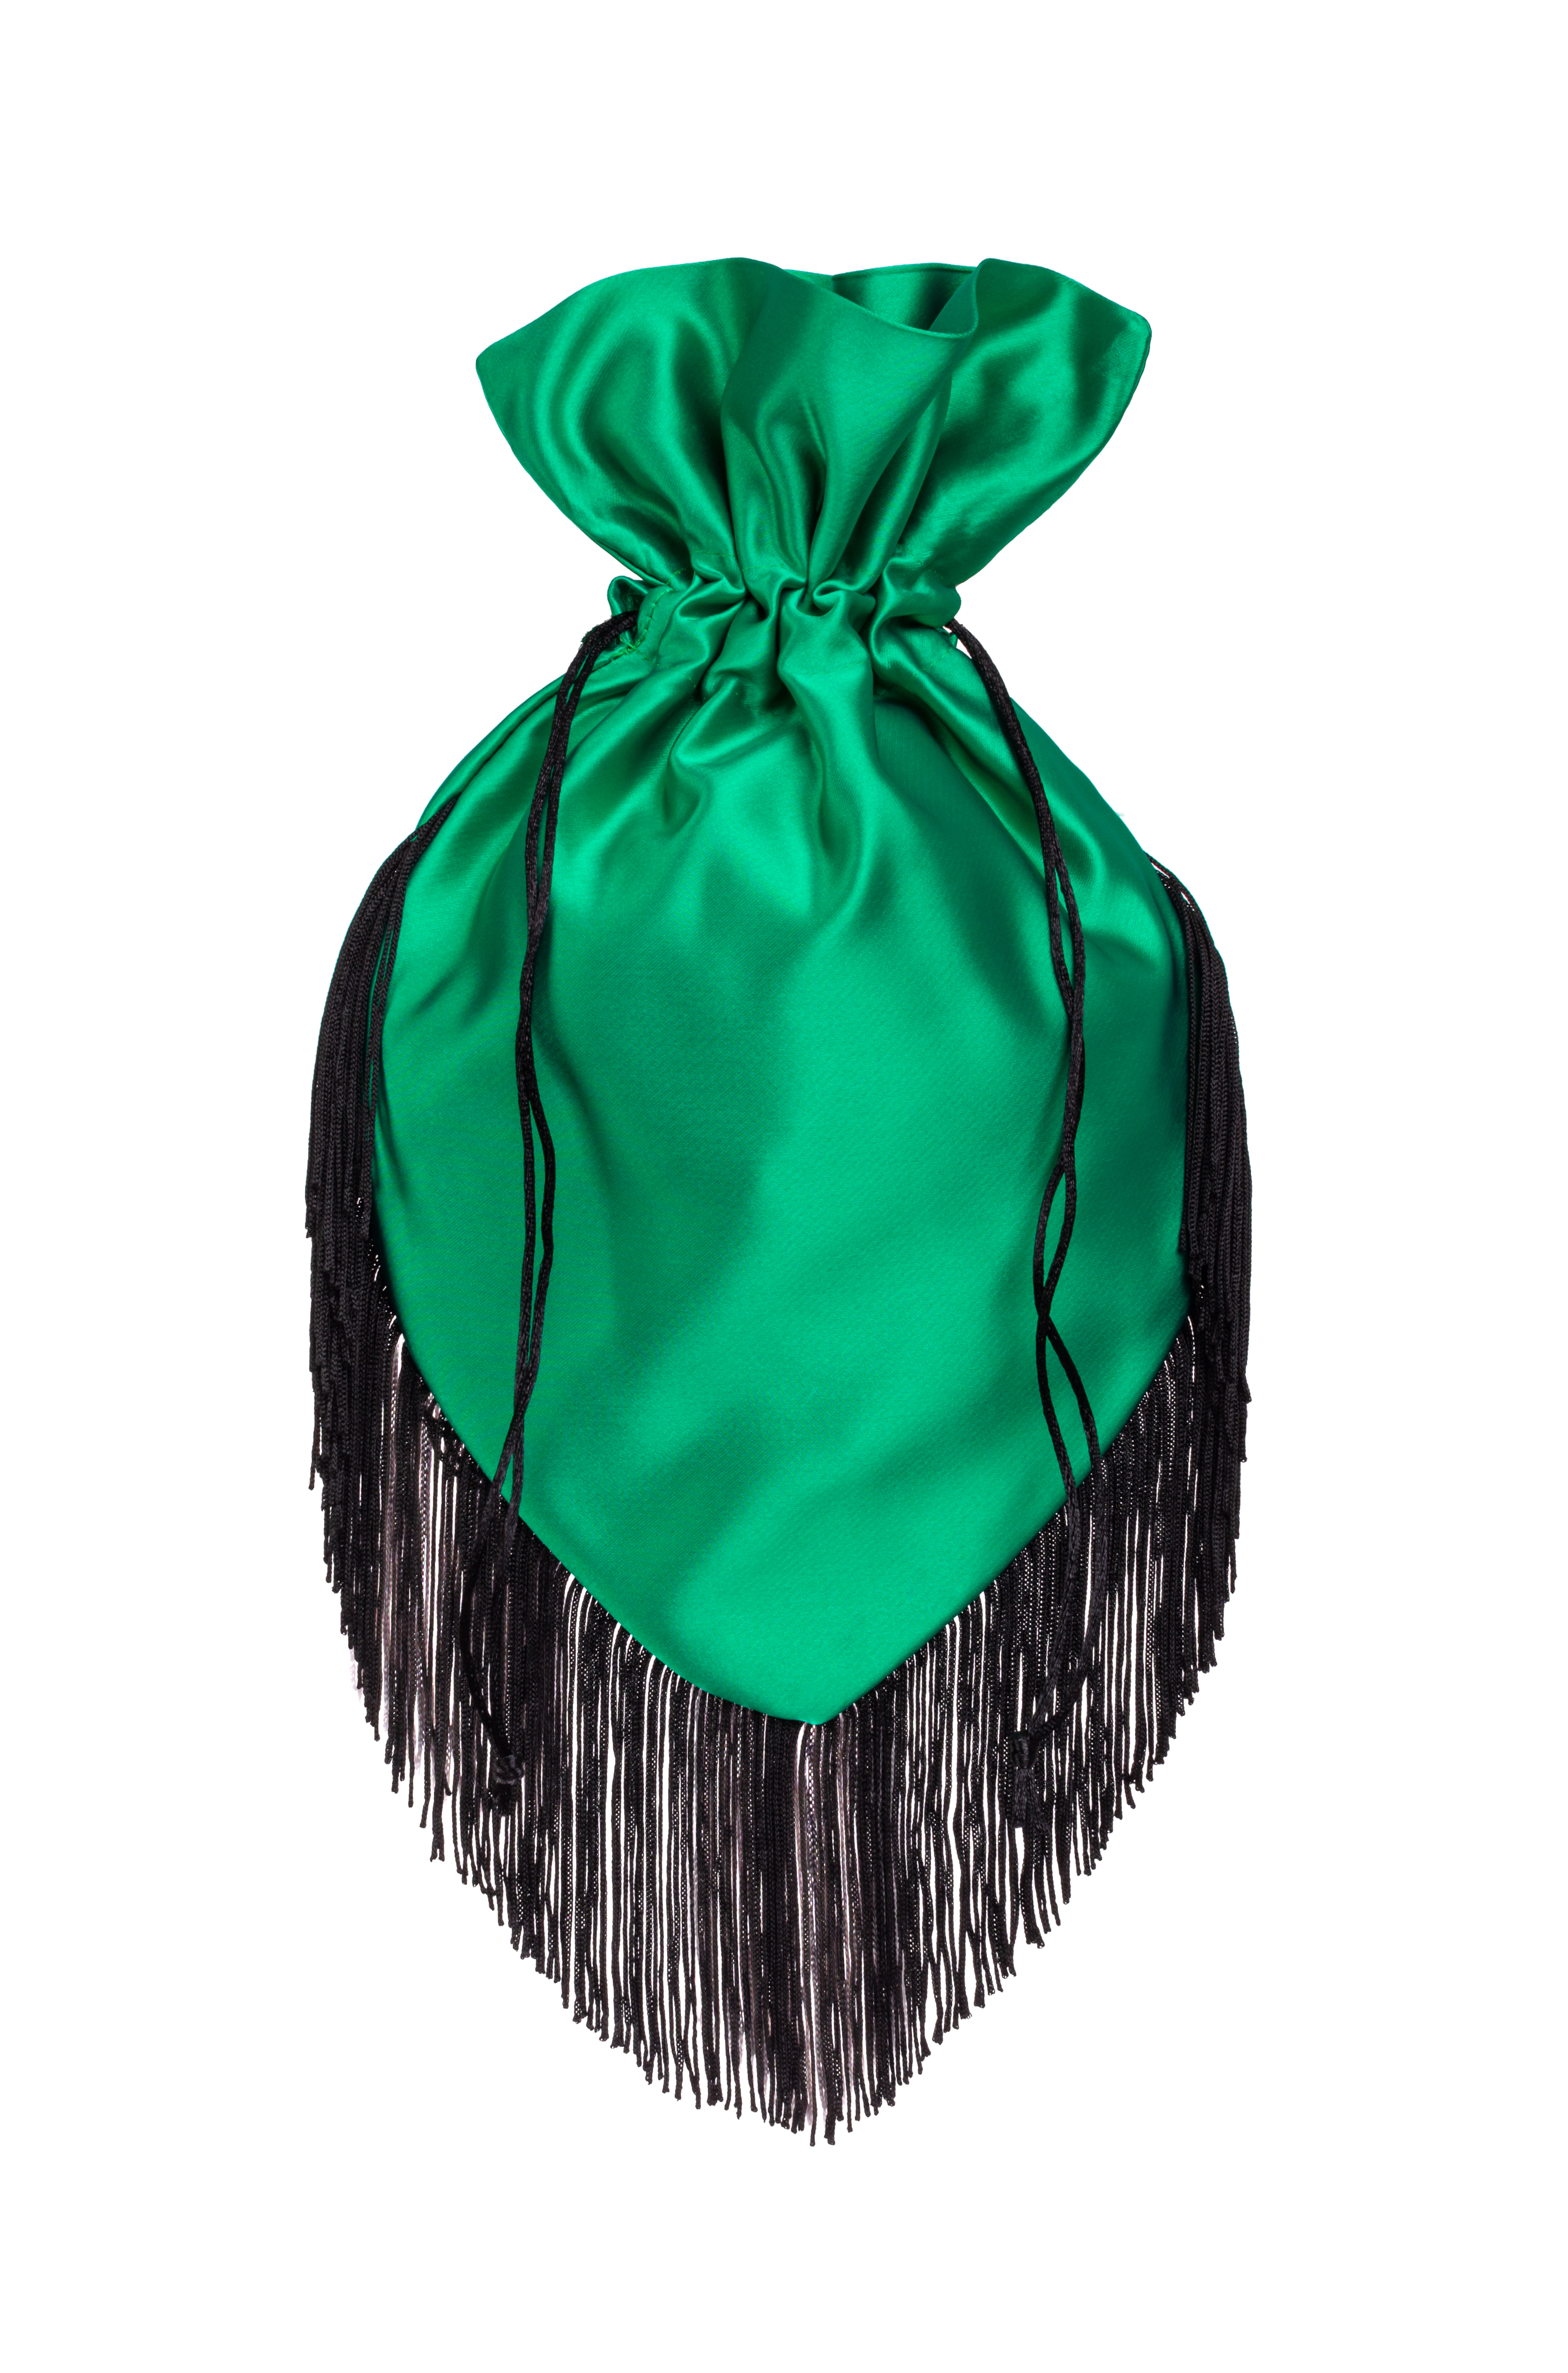 Emerald pouch with black fringe